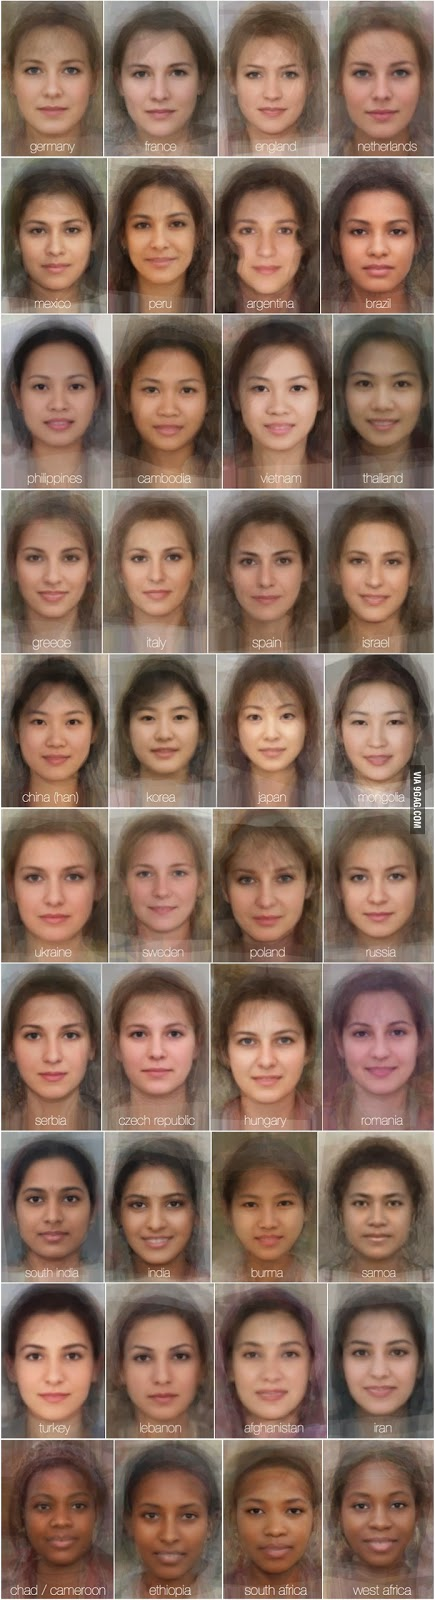 average_women_faces_in_different_countries